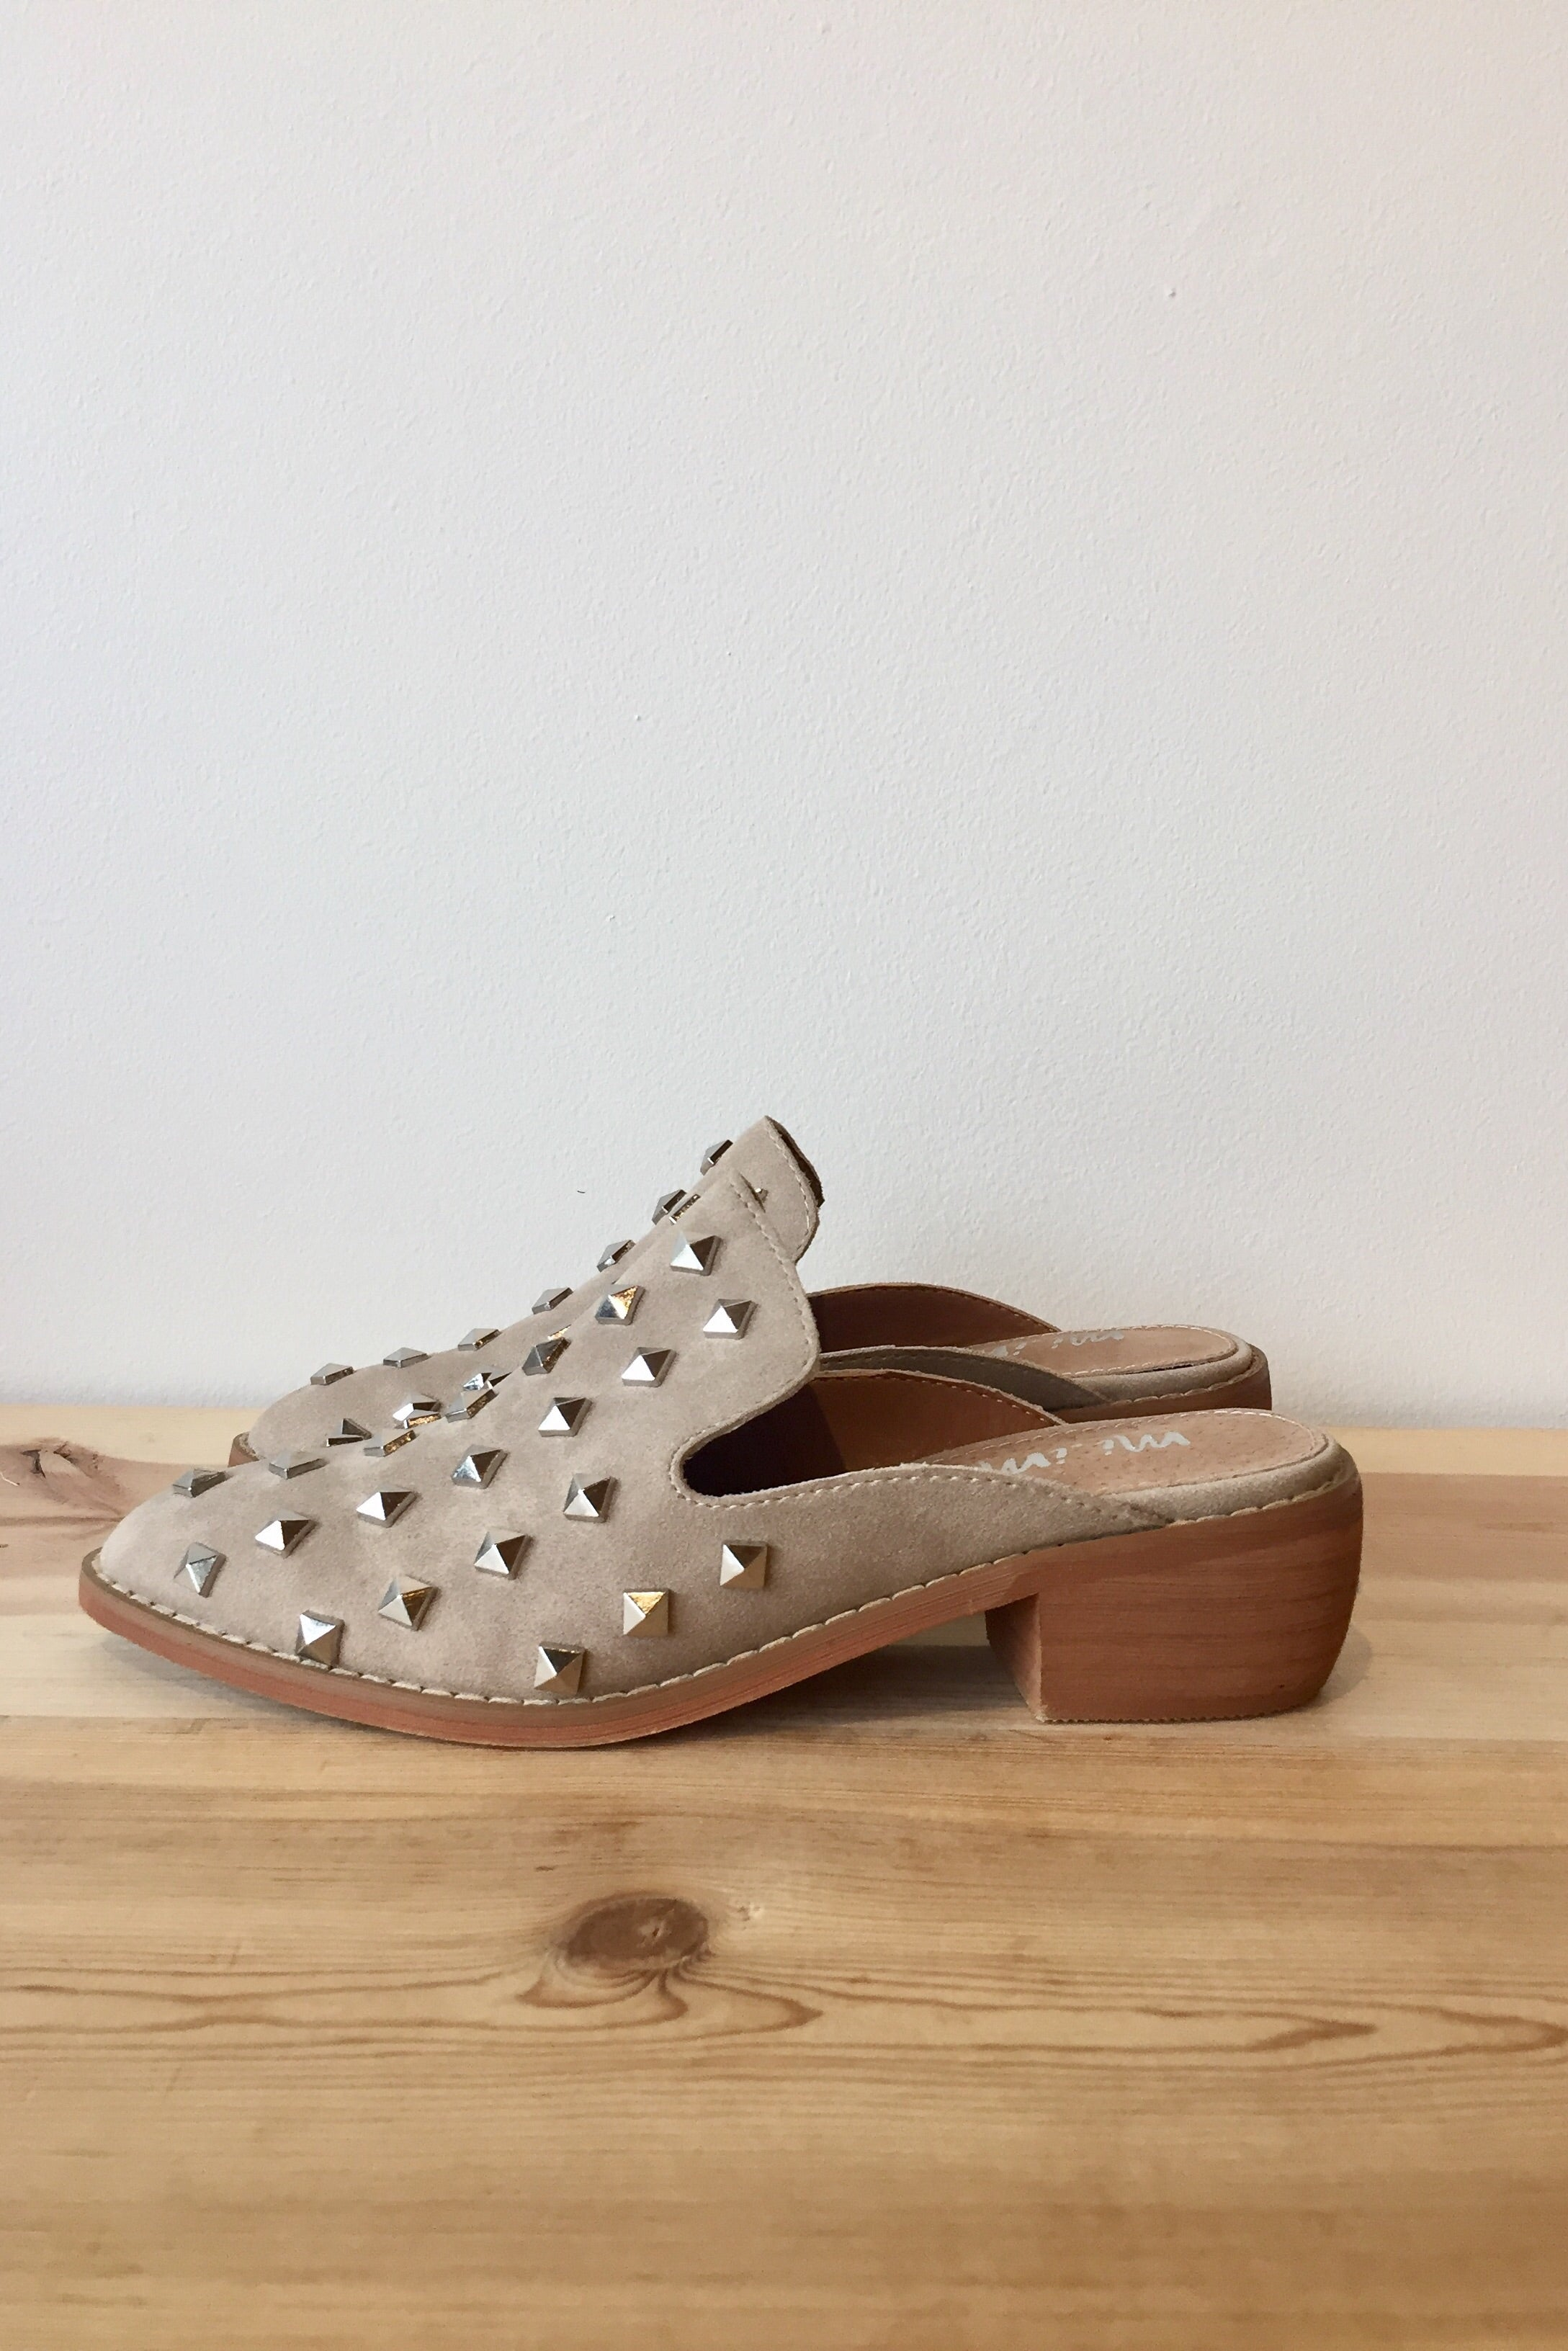 mode, Stuart studded slide